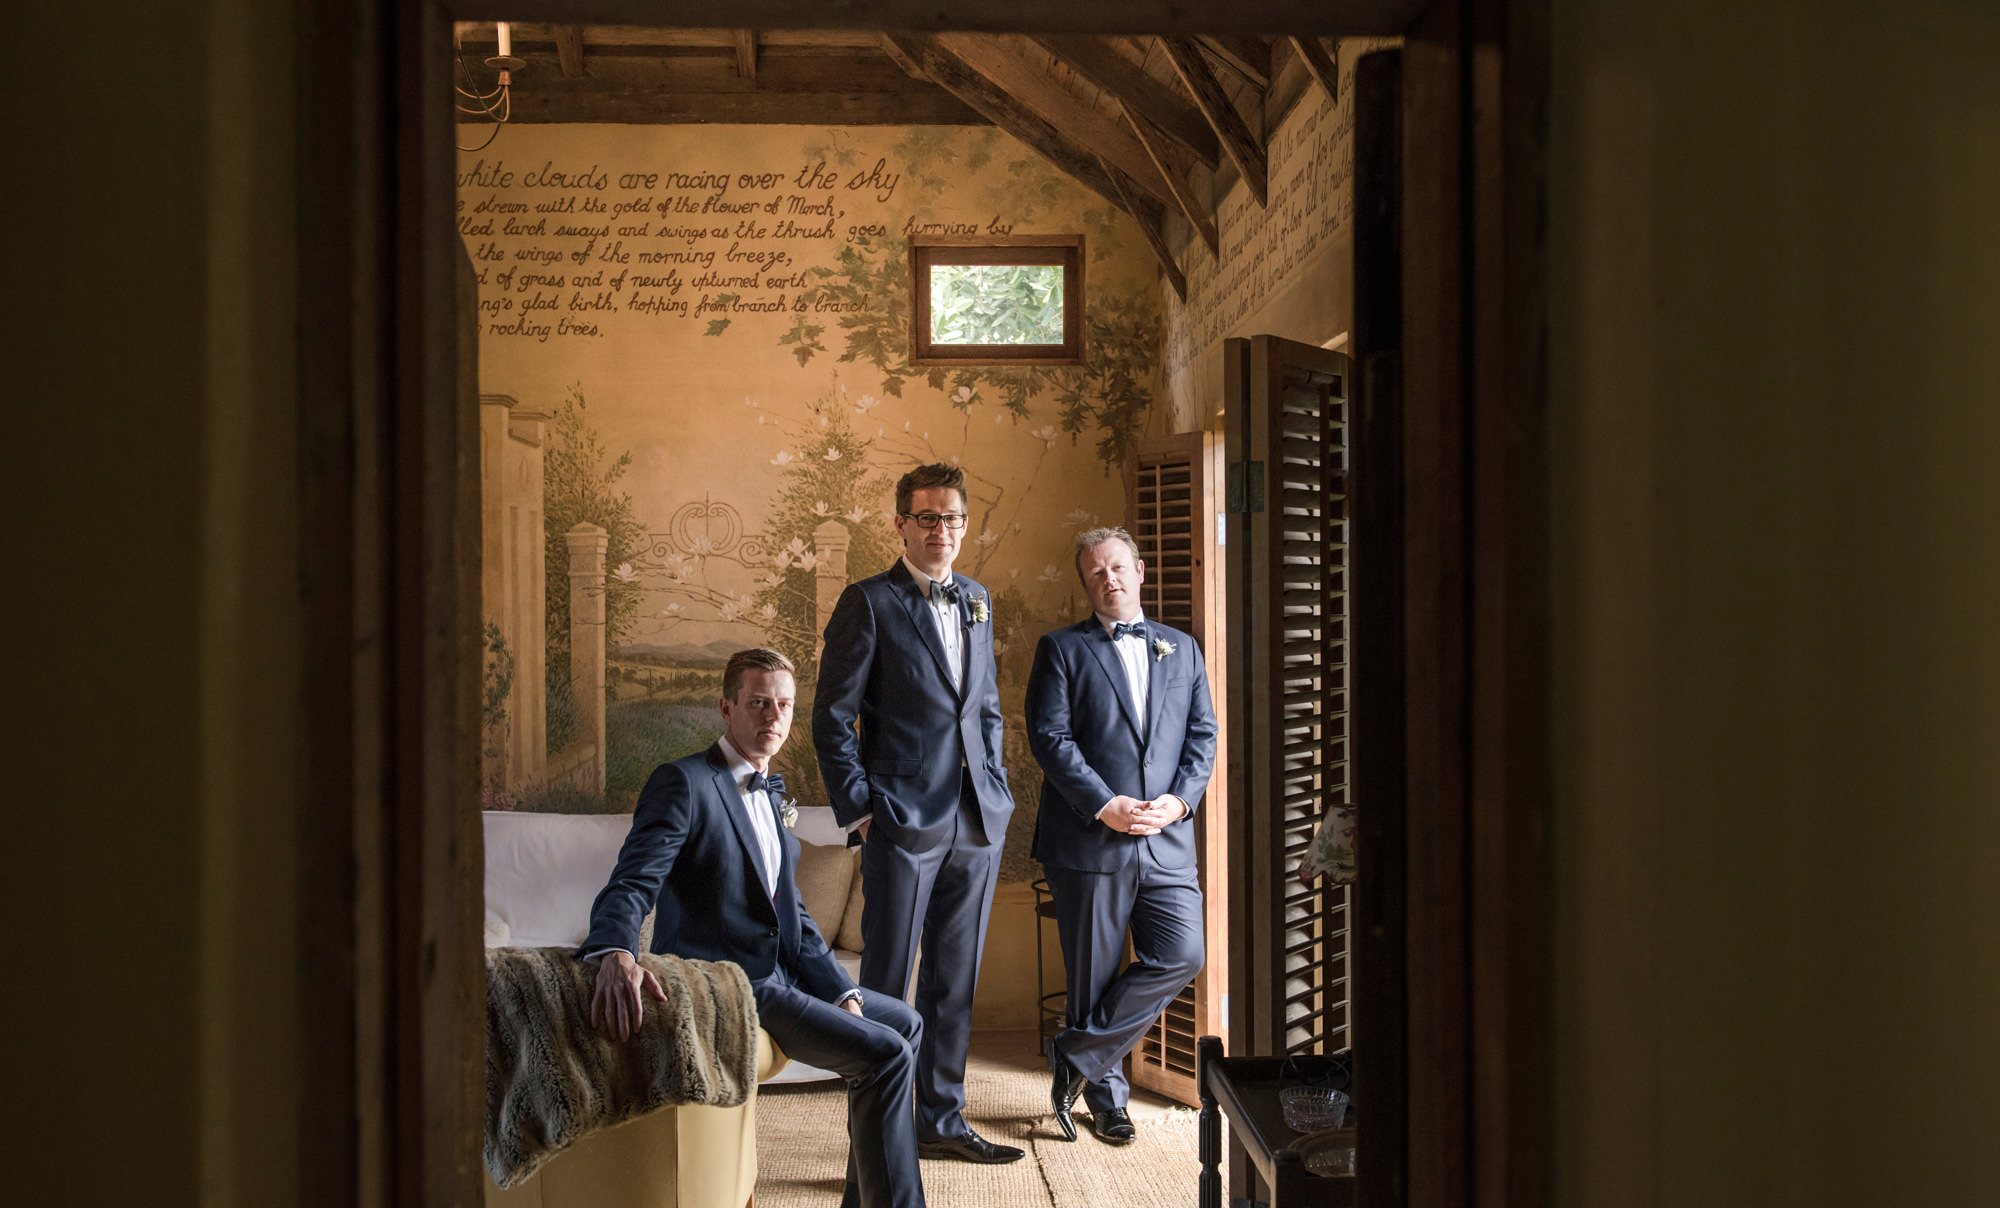 Classic portrait of groom and groomsmen in painted room wearing blue-grey suits  -  Studio Impressions Photography